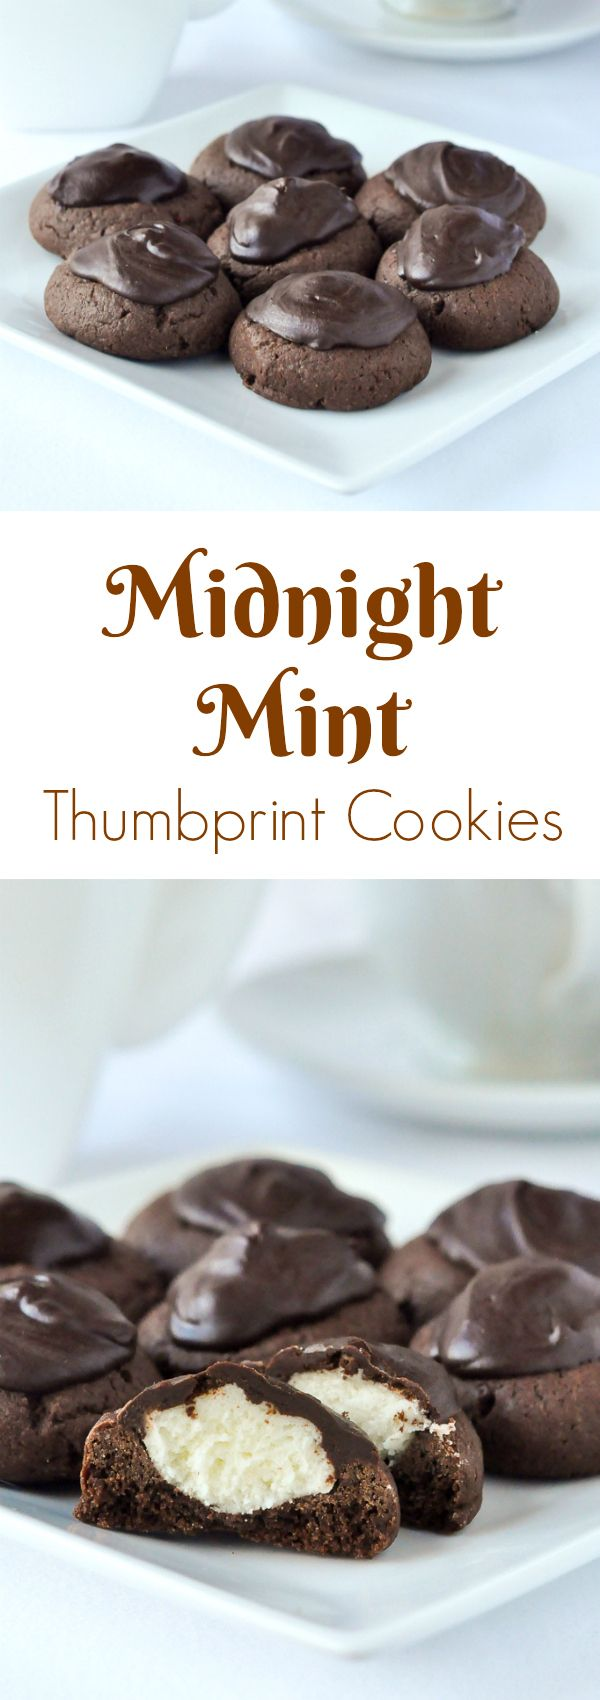 Midnight Mint Thumbprint Cookies - a dark chocolate thumbprint cookie filled with creamy mint frosting and capped with a dollop of rich dark chocolate.